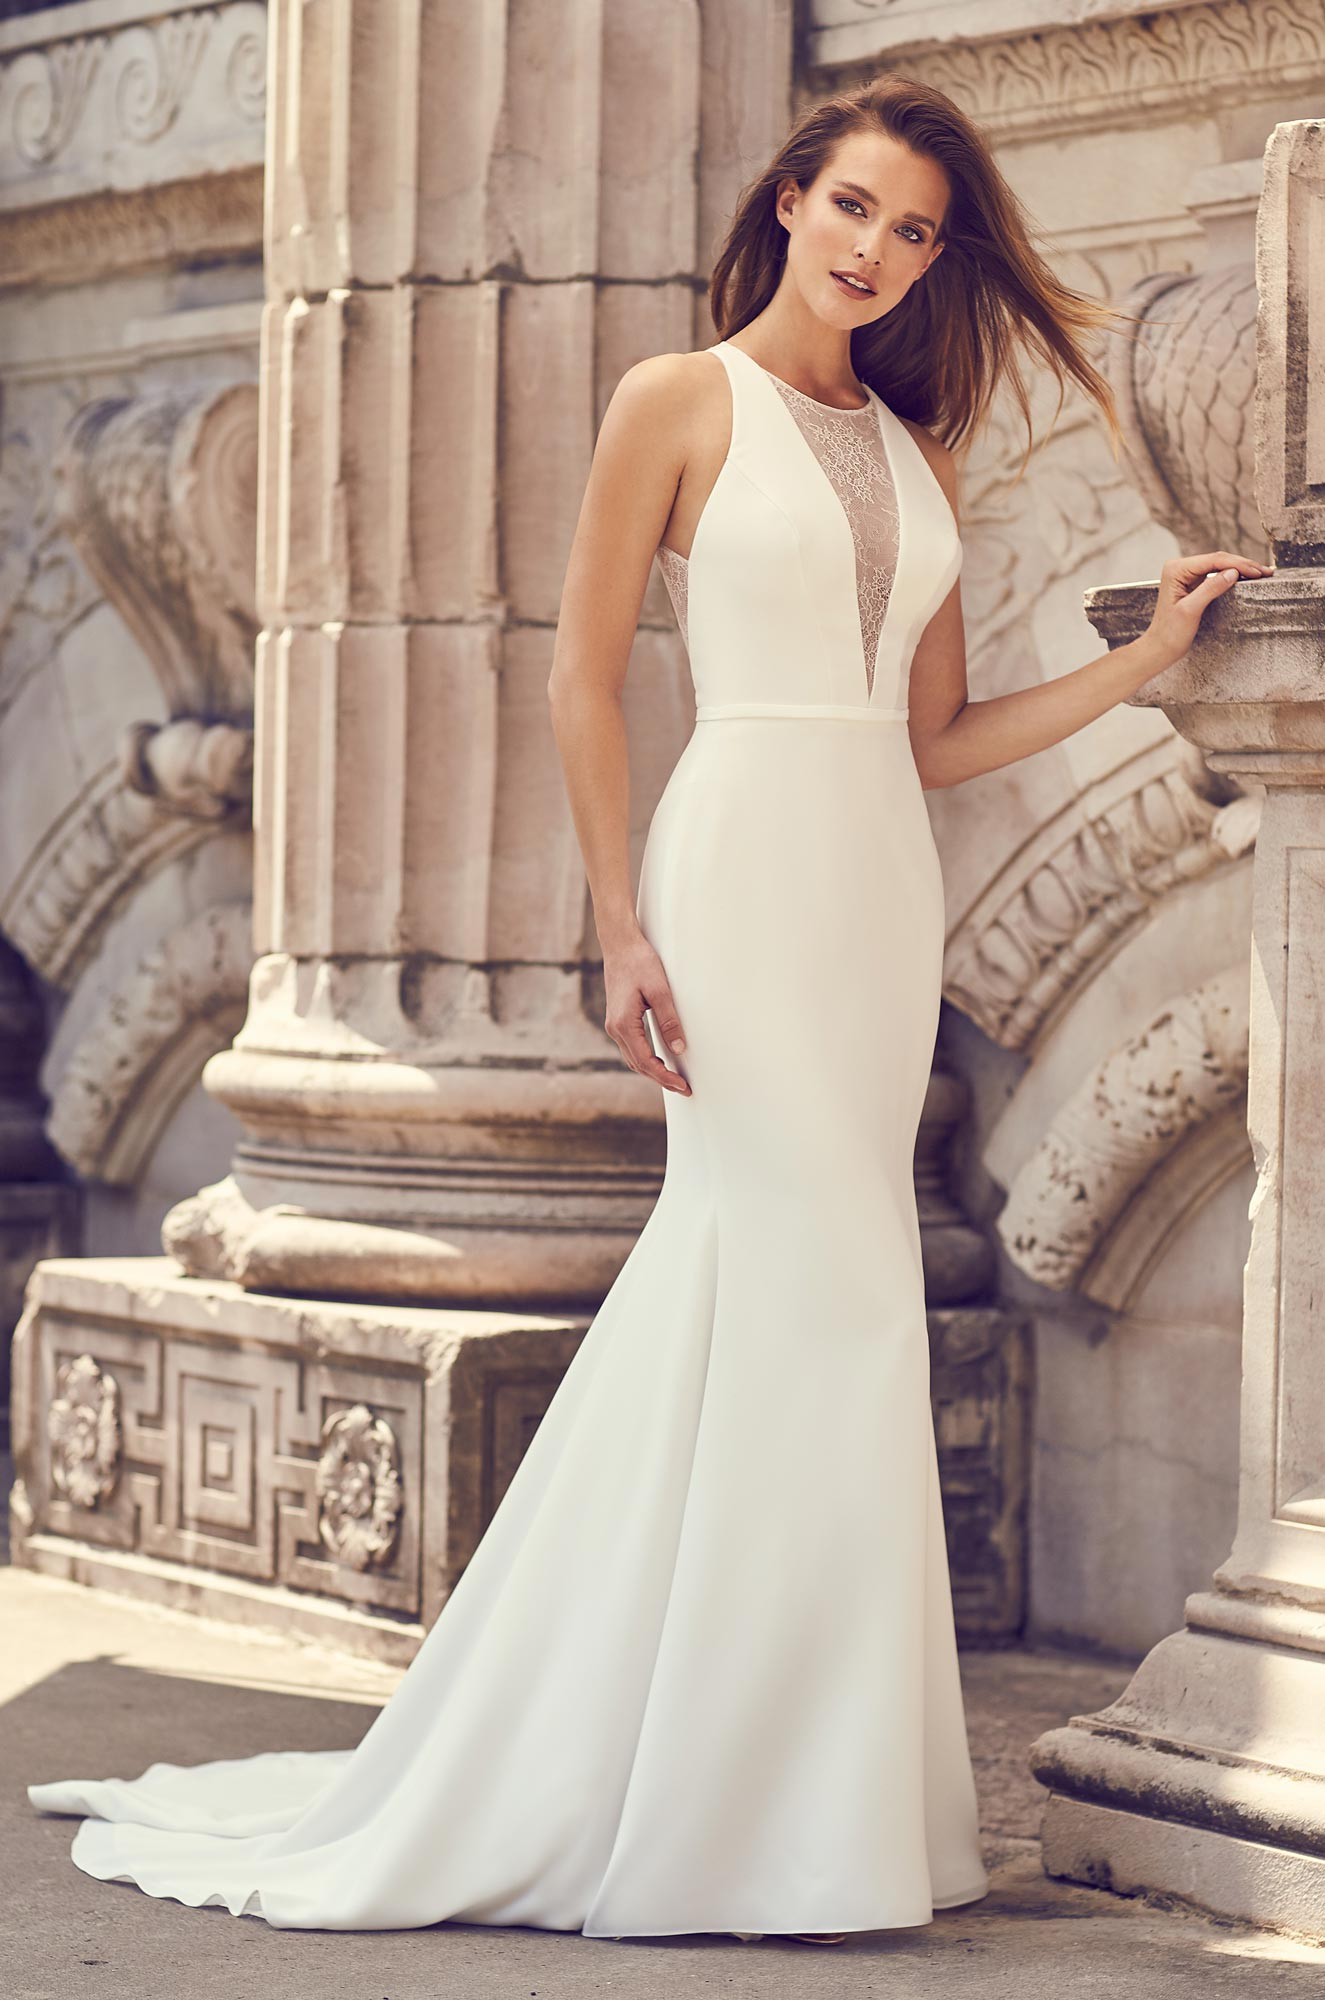 Illusion Halter Neckline Wedding Dress - Style #2239 | Mikaella Bridal